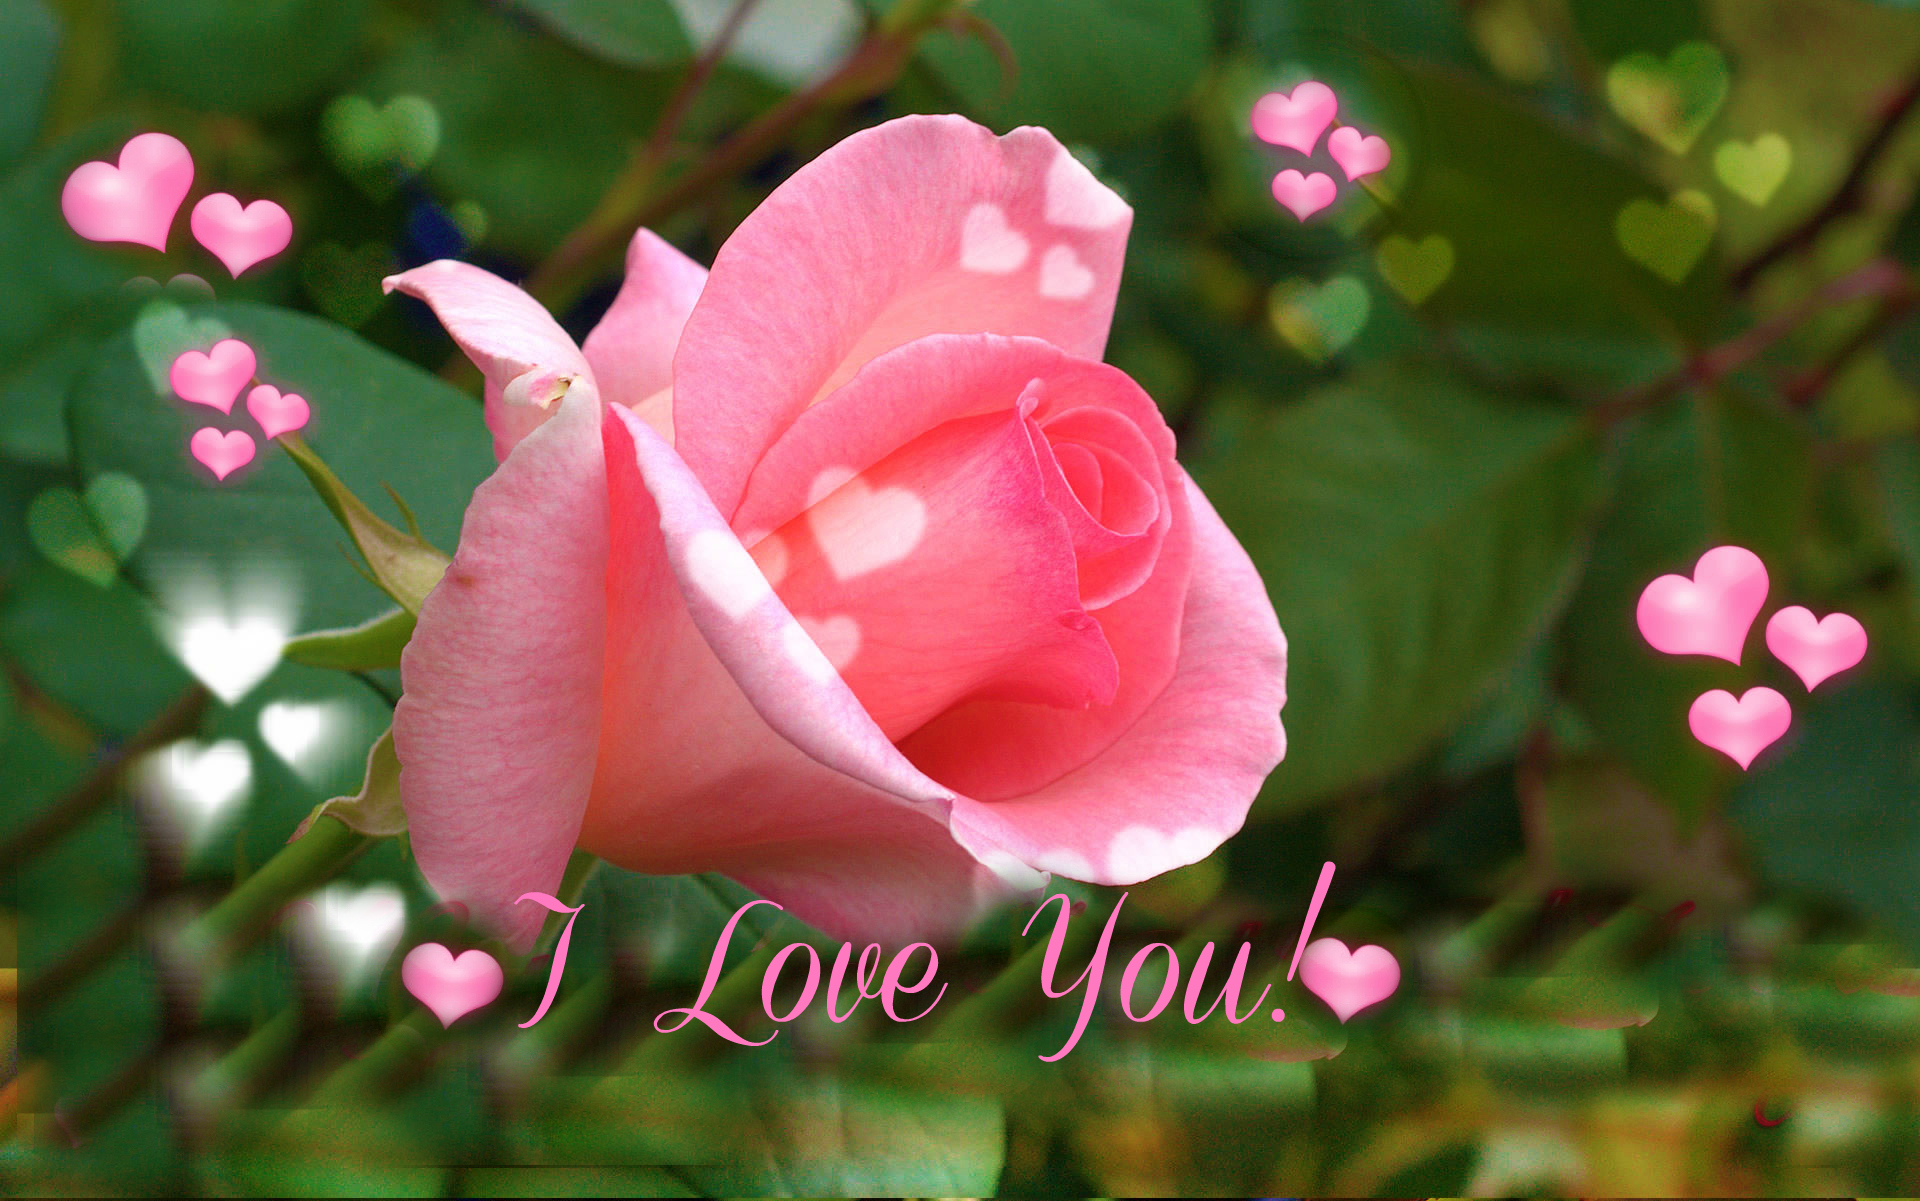 I love you pink rose for valentine s day wallpapers hd - Pink rose hd wallpaper for mobile ...